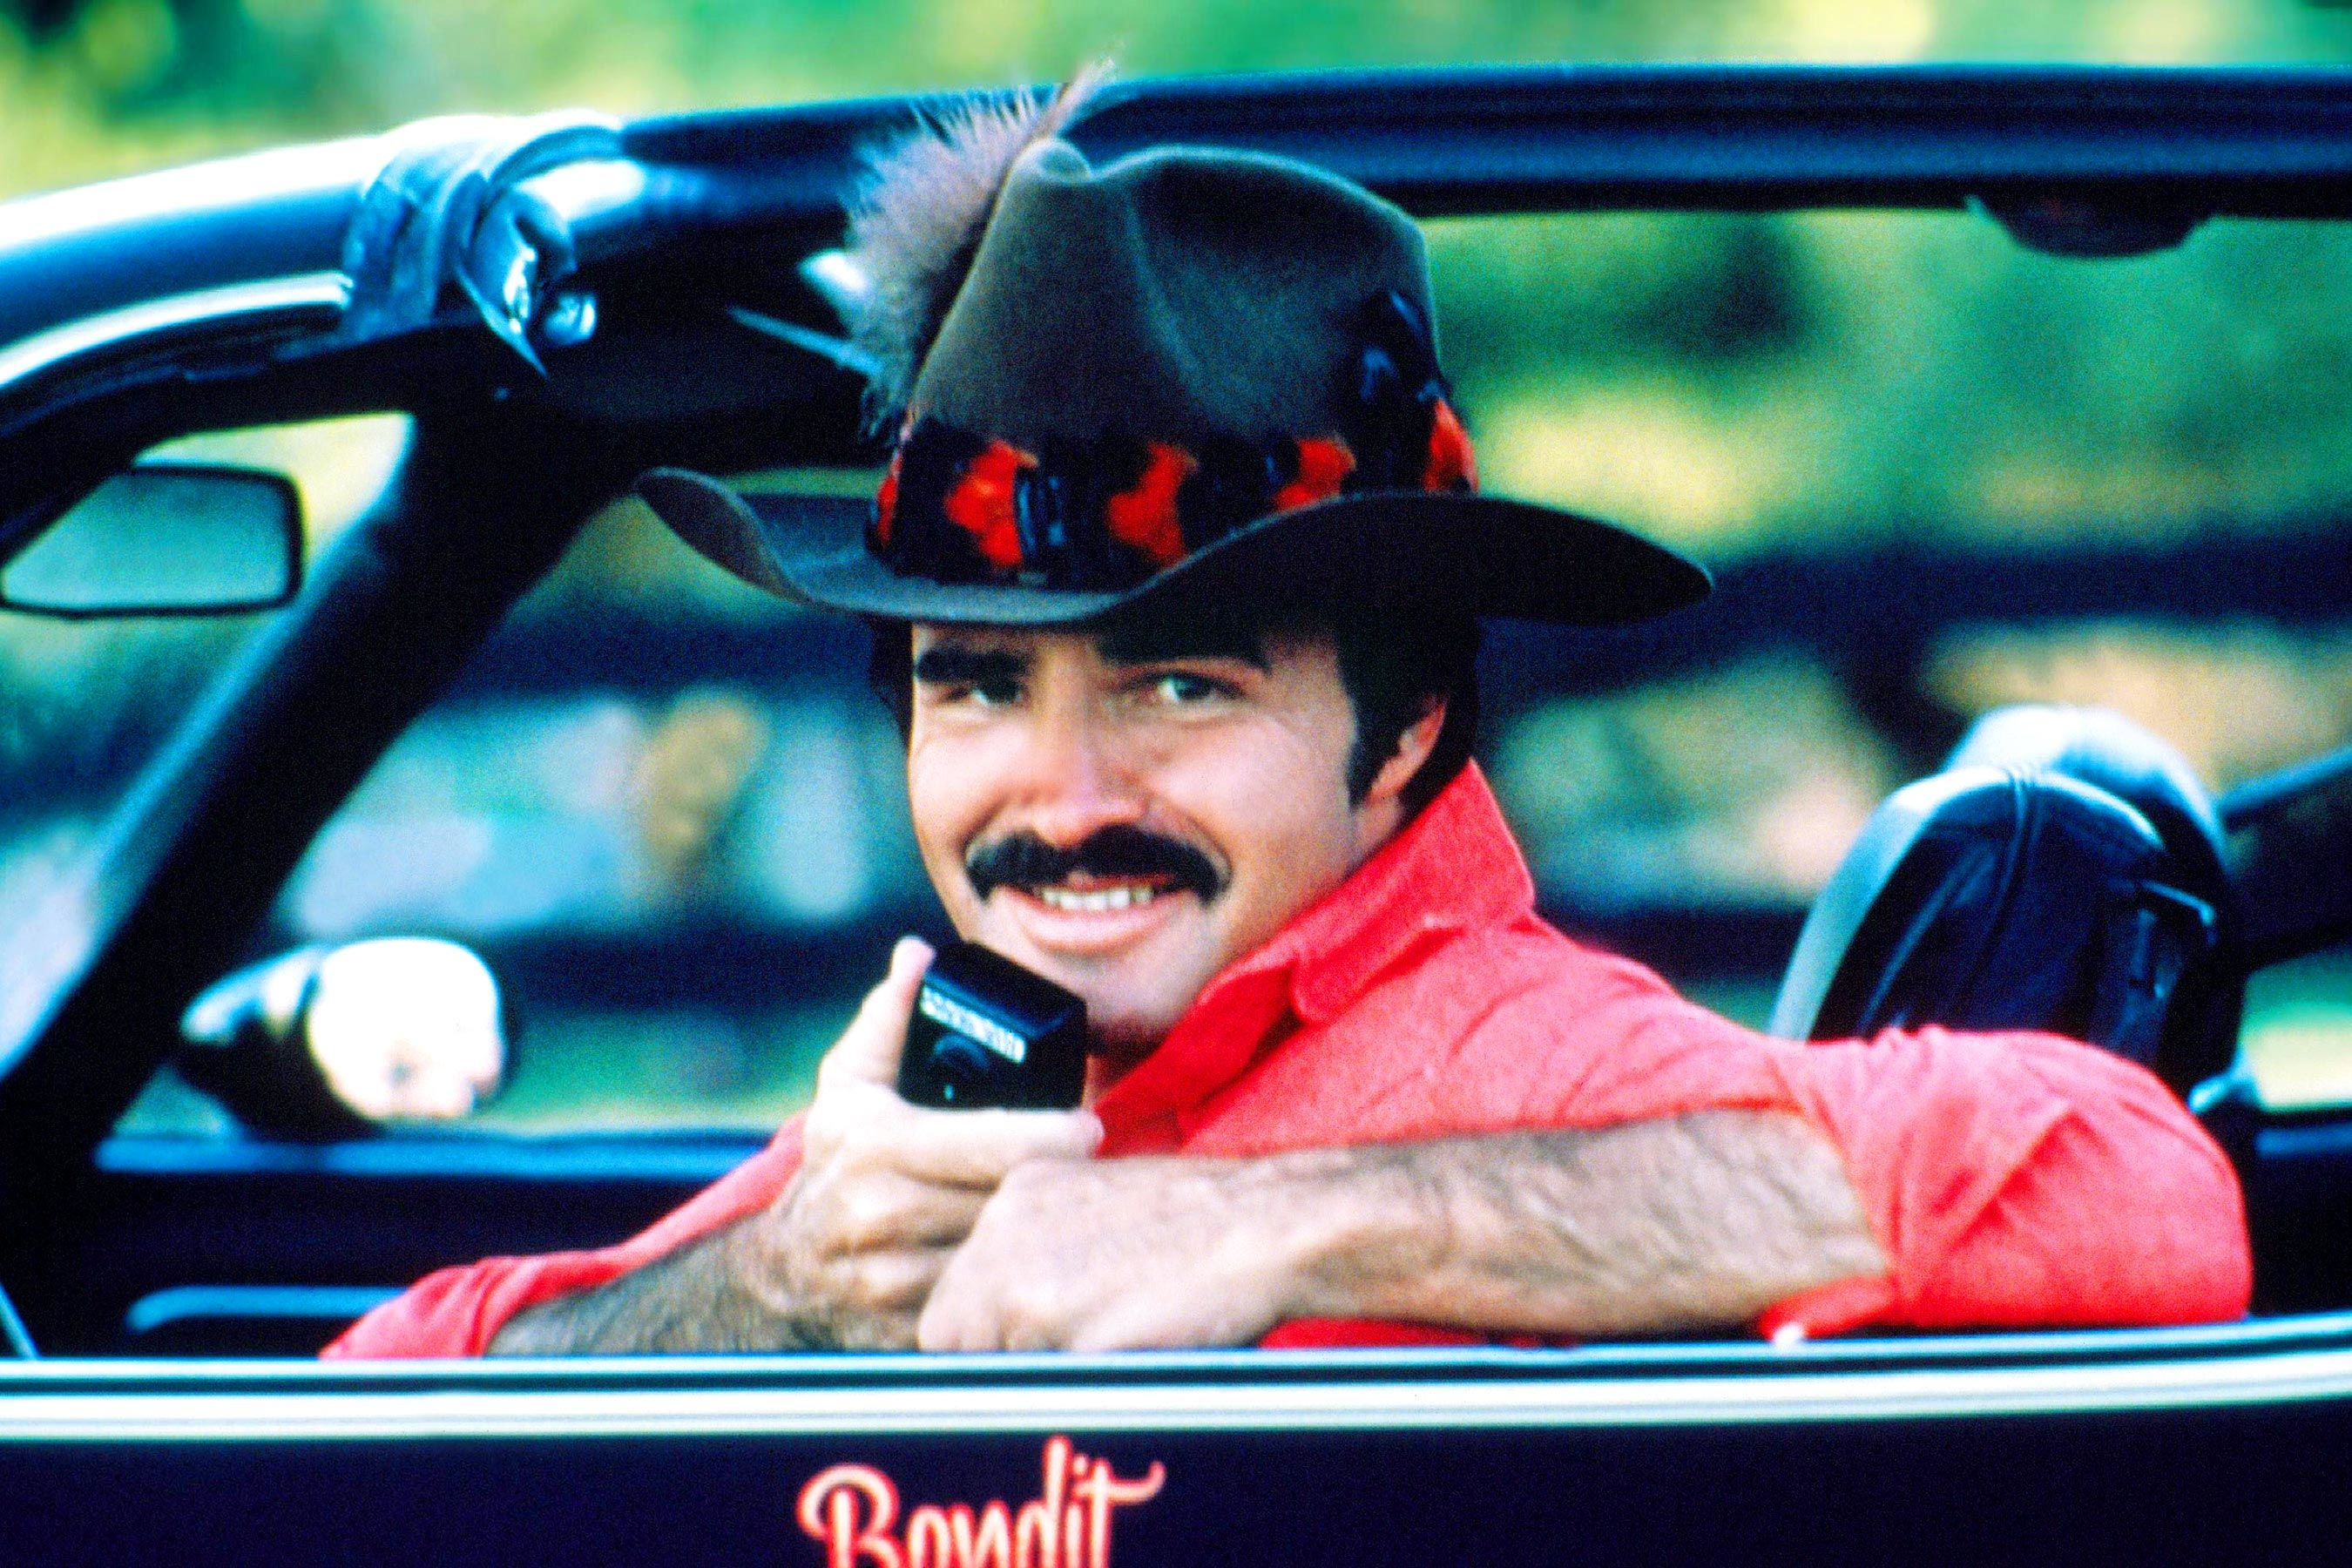 Burt Reynolds, Smokey and the Bandit and Boogie Nights star, dies at 82